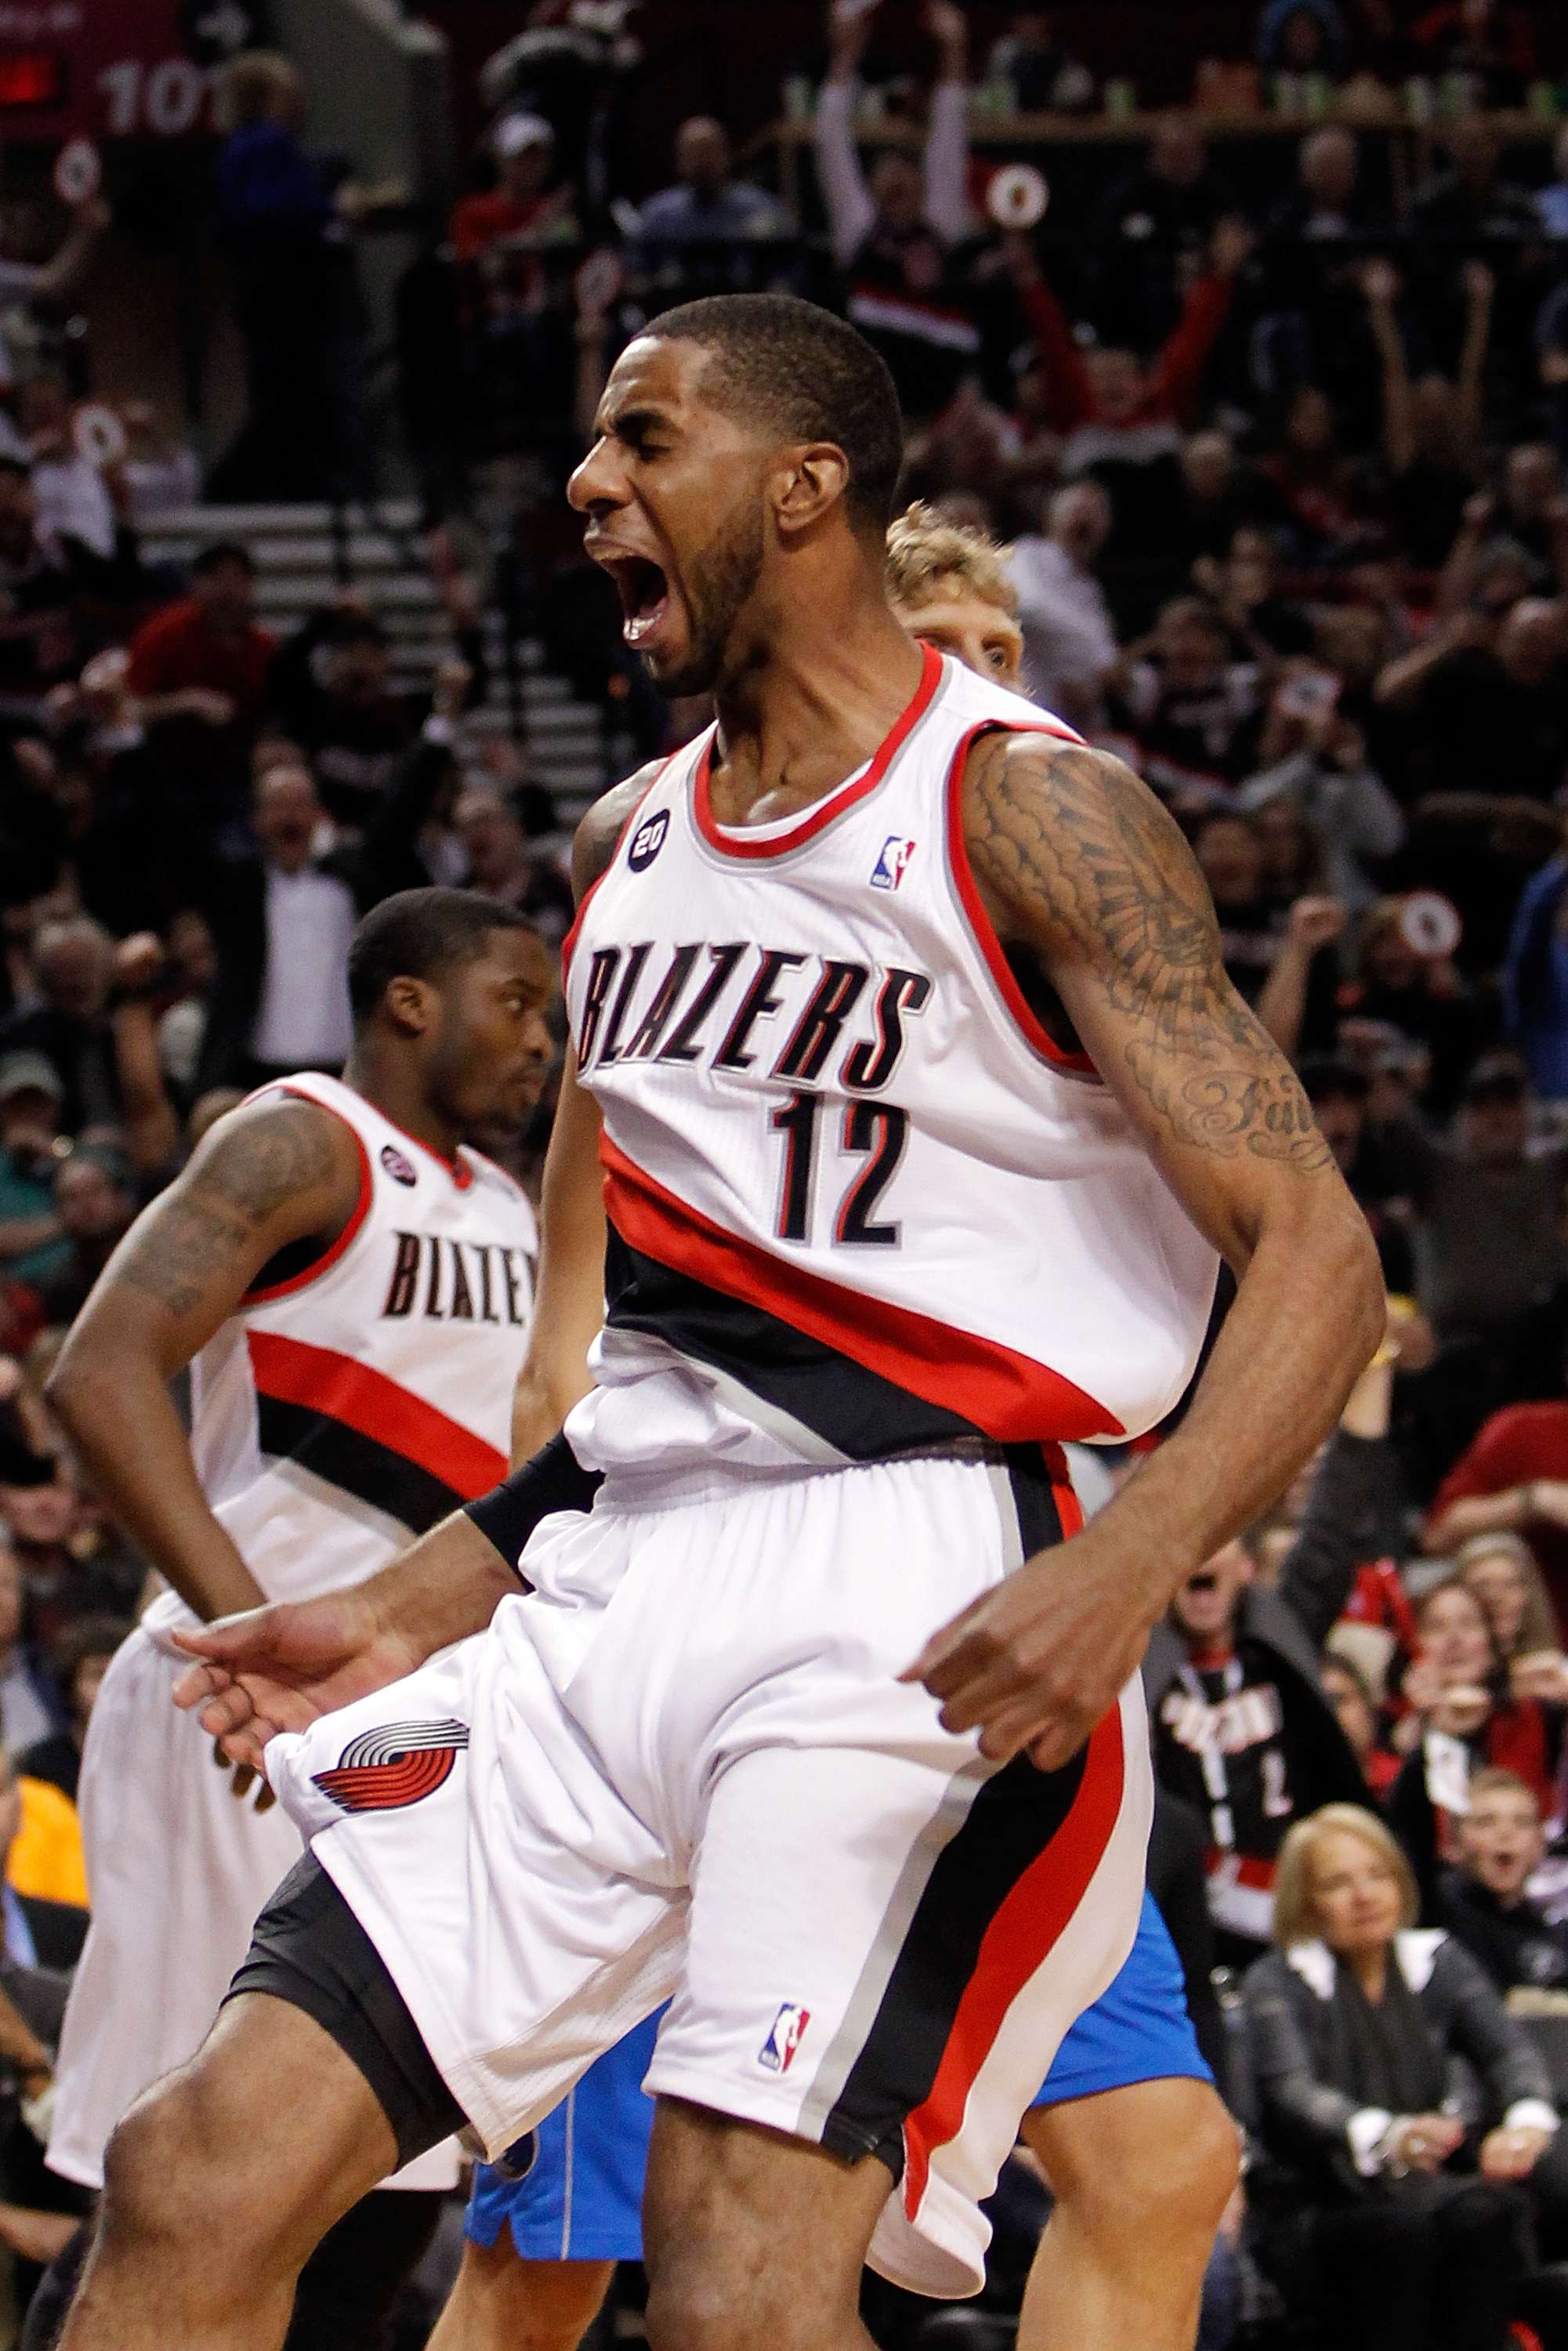 PORTLAND, OR - APRIL 21:  LaMarcus Aldridge #12 of the Portland Trail Blazers celebrates a dunk against the Dallas Mavericks in Game Three of the Western Conference Quarterfinals in the 2011 NBA Playoffs on April 21, 2011 at the Rose Garden in Portland, O